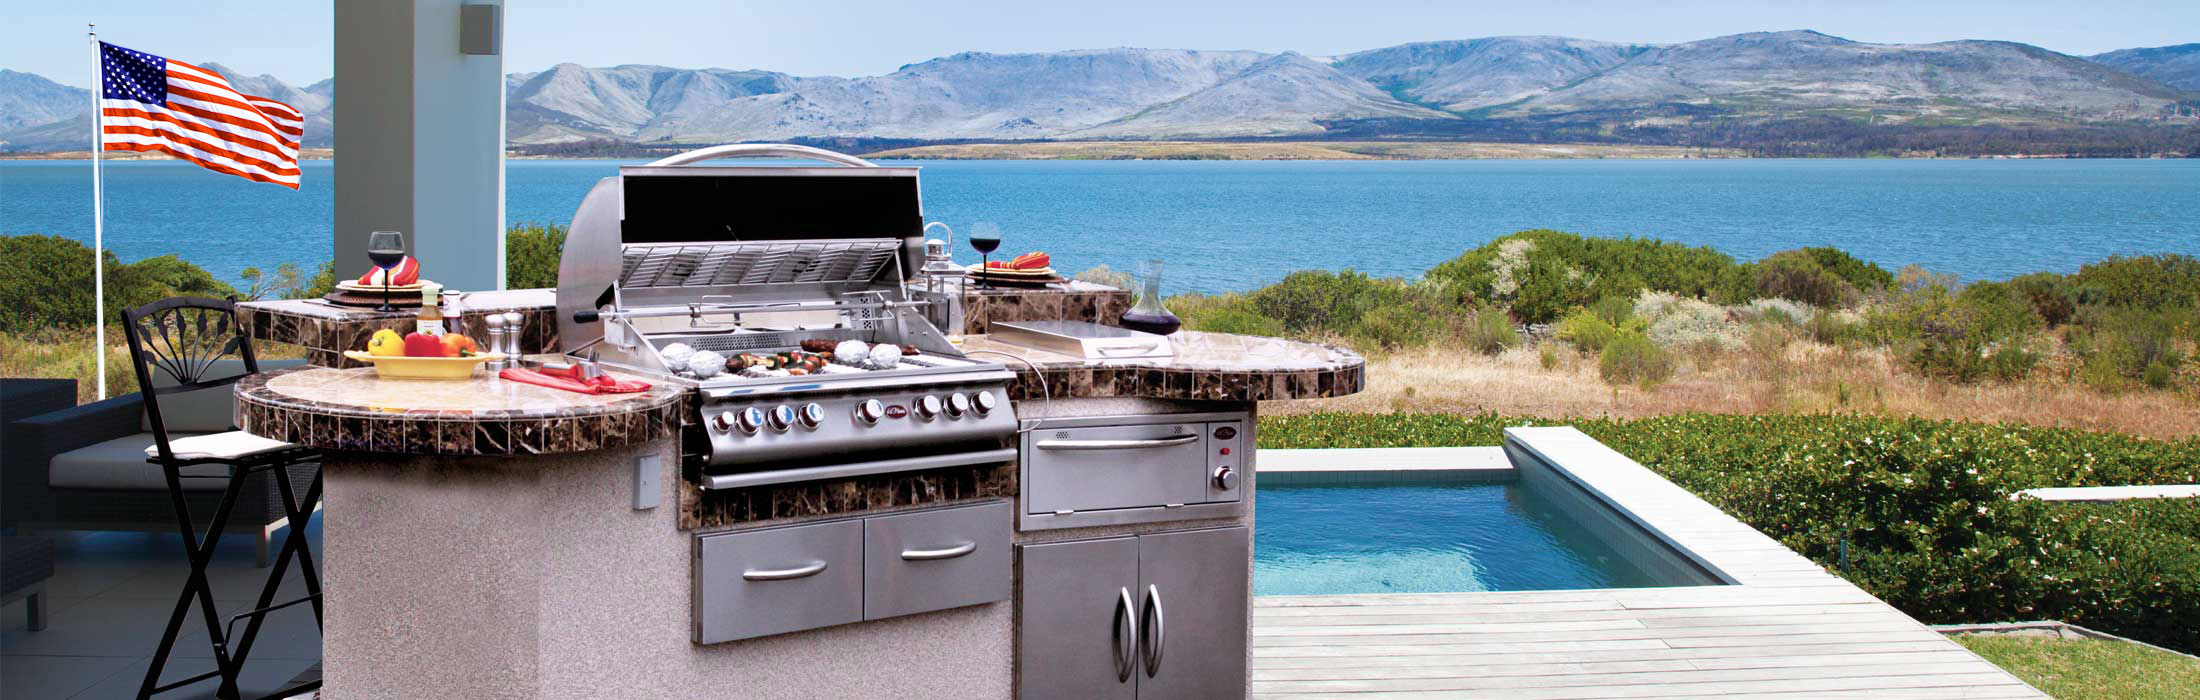 Cal Flame BBQ | Company Overview